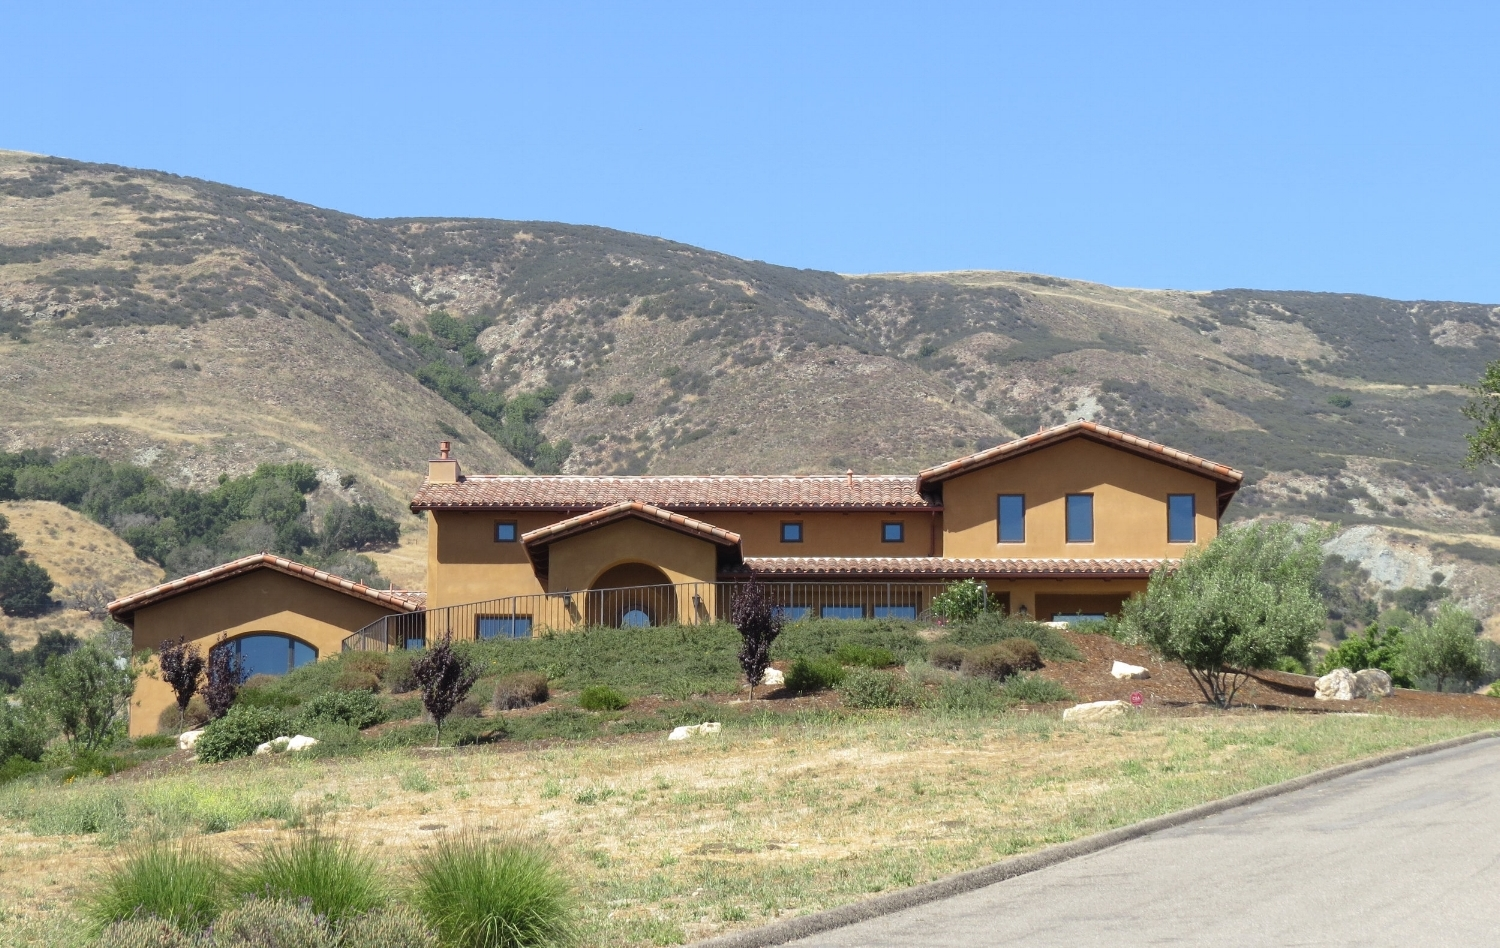 New Residence in San Luis Obispo, CA. Mediterranean style architecture.